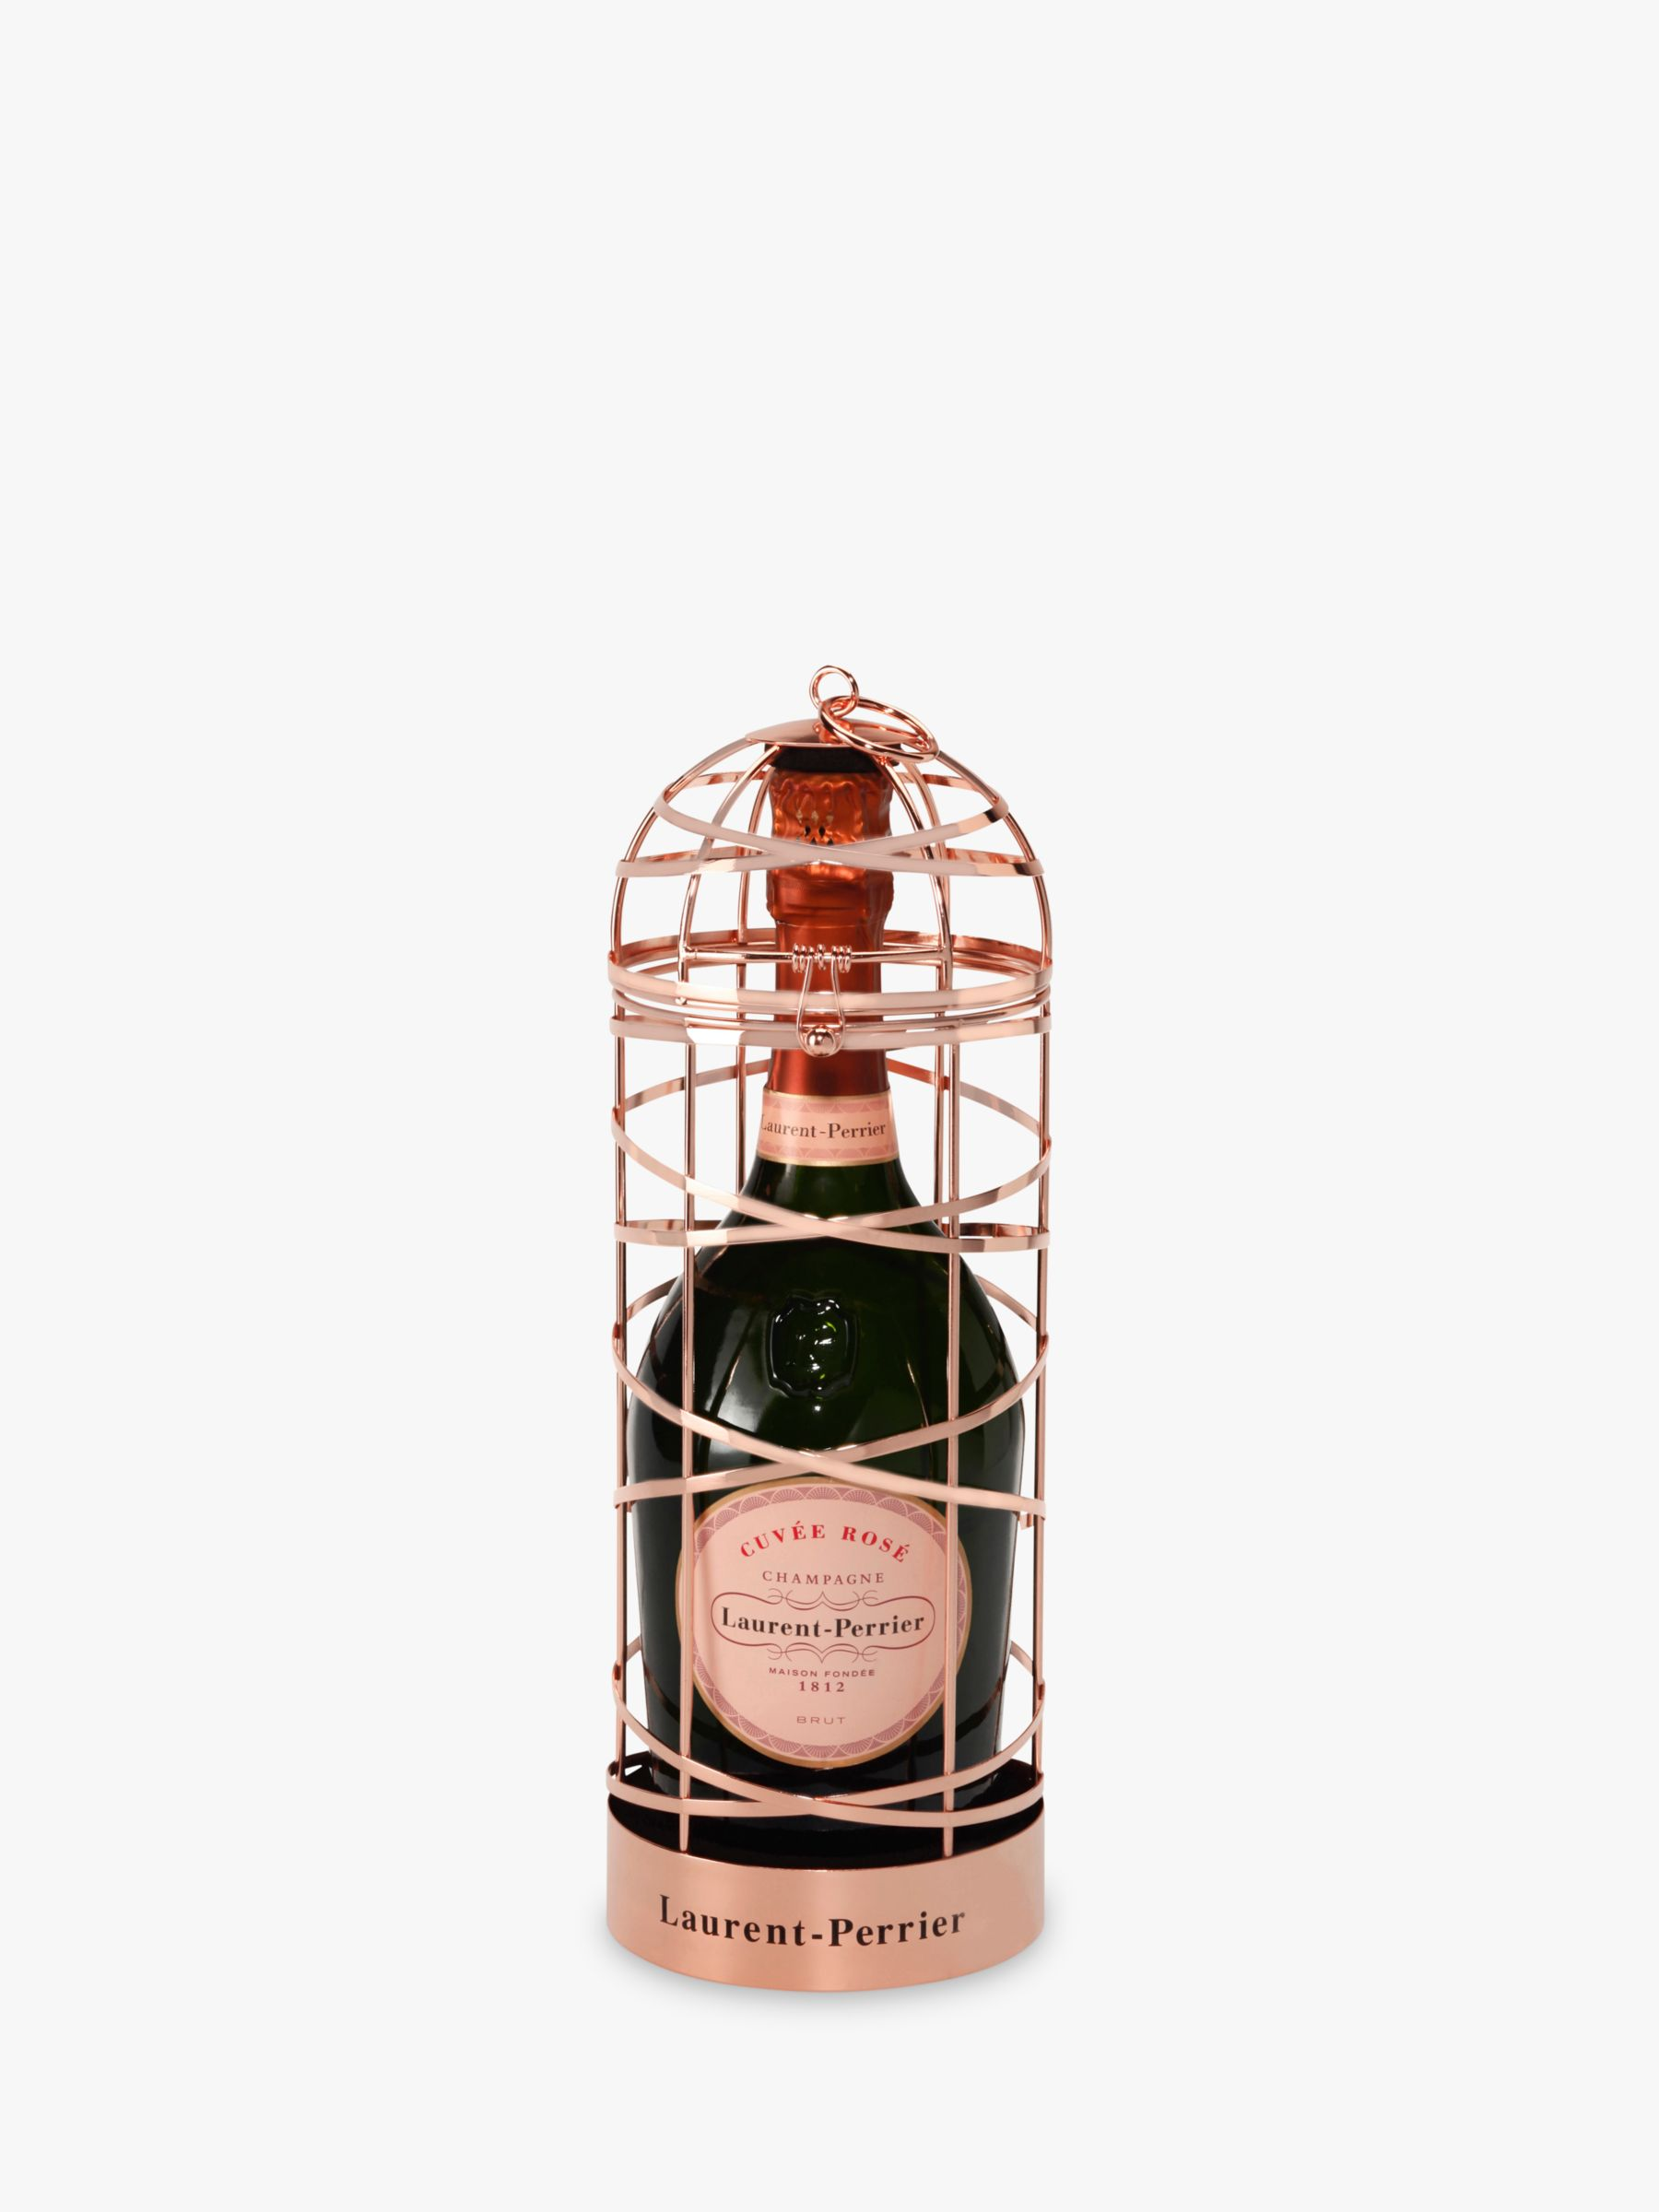 Laurent-Perrier Laurent-Perrier Rosé Champagne Ribbon Cage Special Edition, 75cl